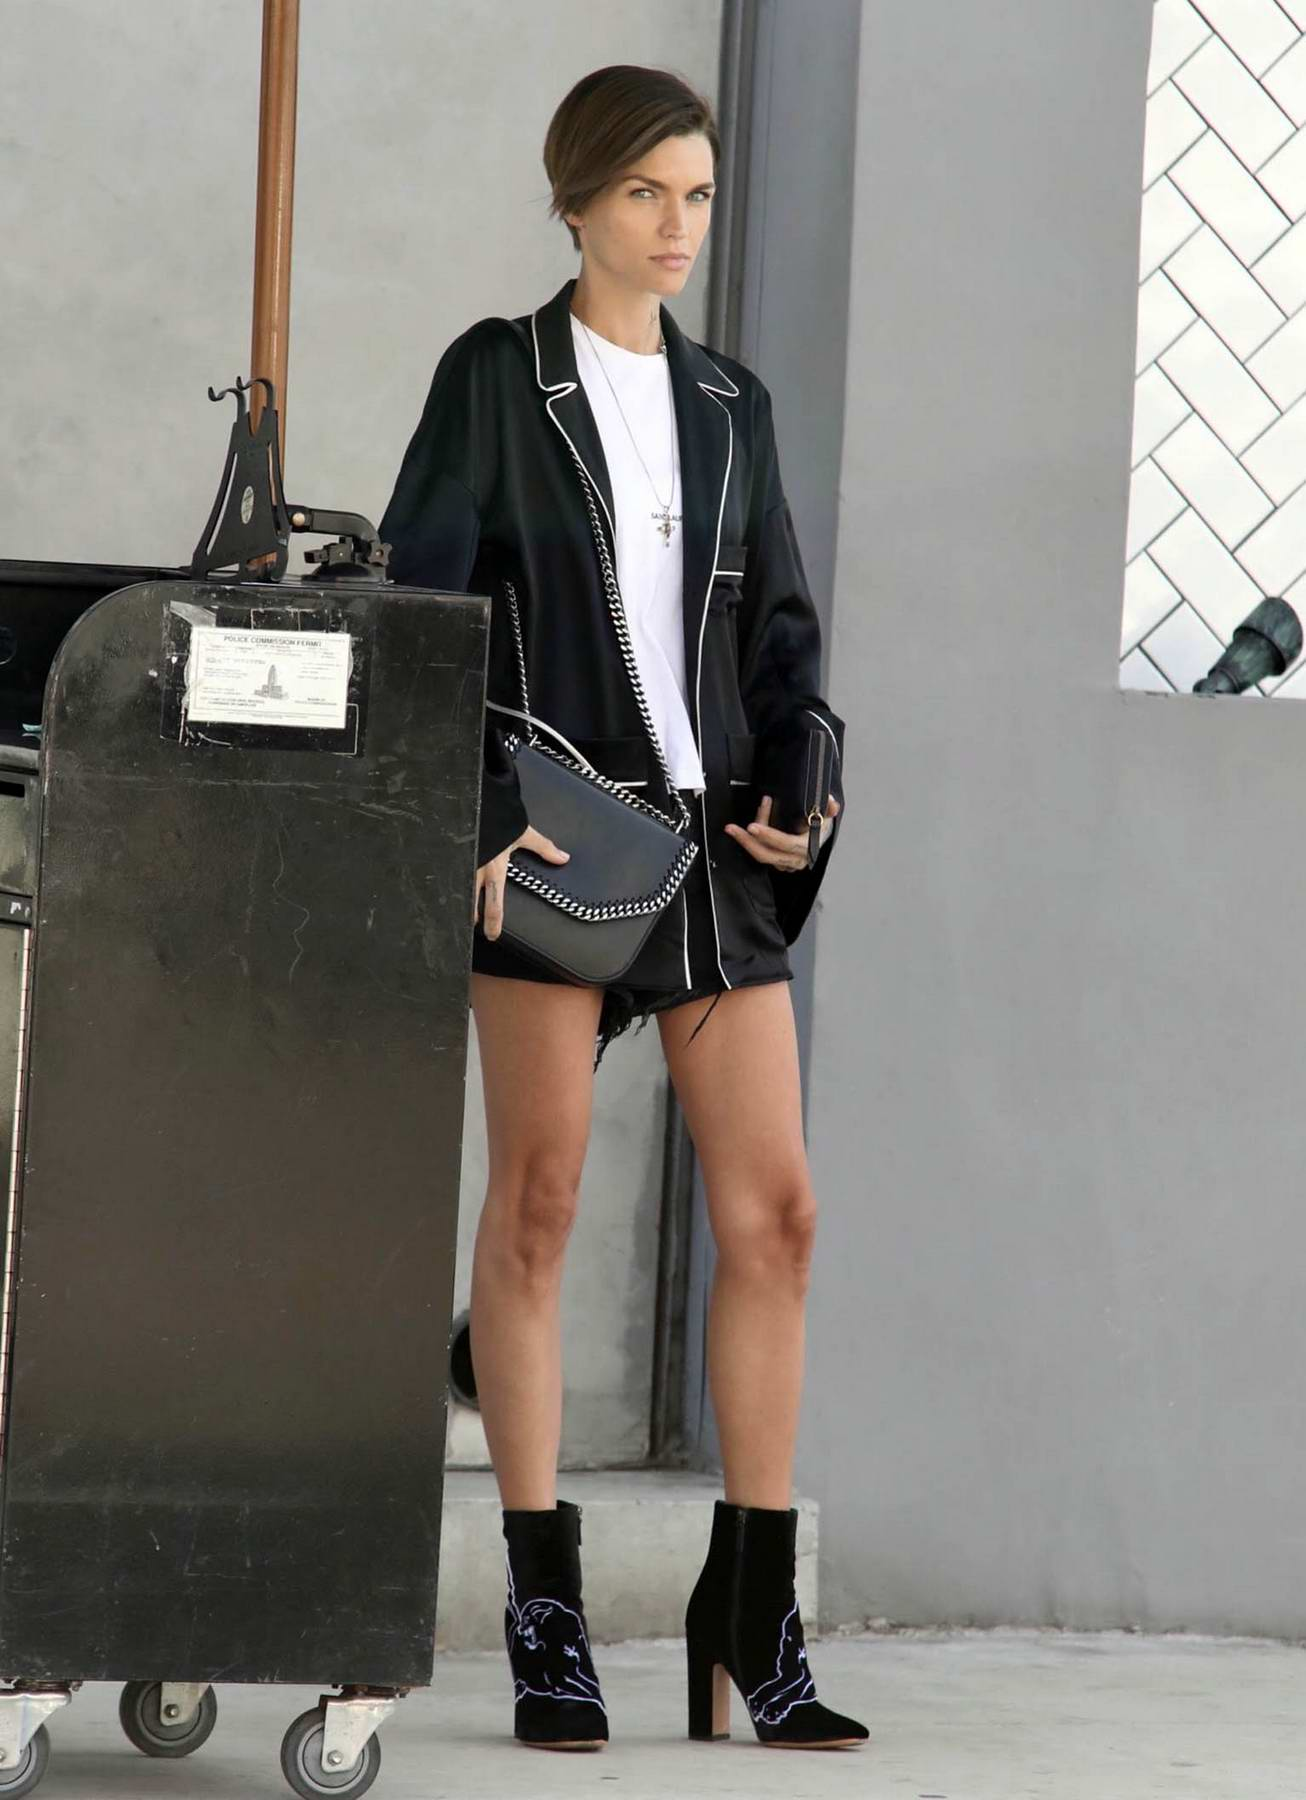 Ruby Rose waiting at a valet stand for her car in Hollywood, Los Angeles